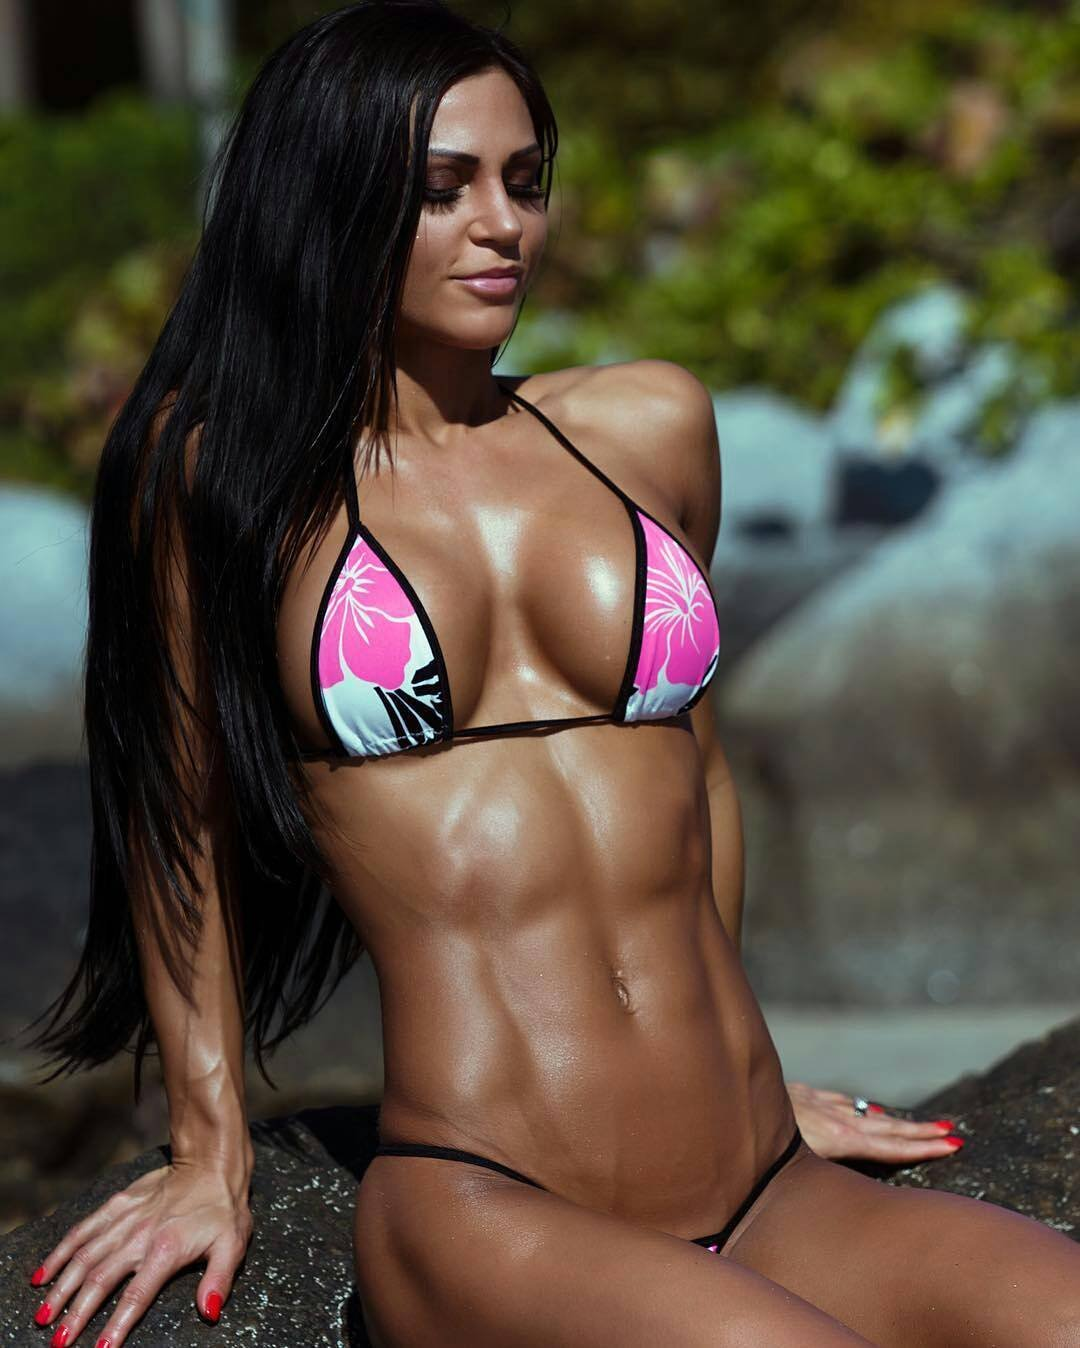 Women fitness models naked